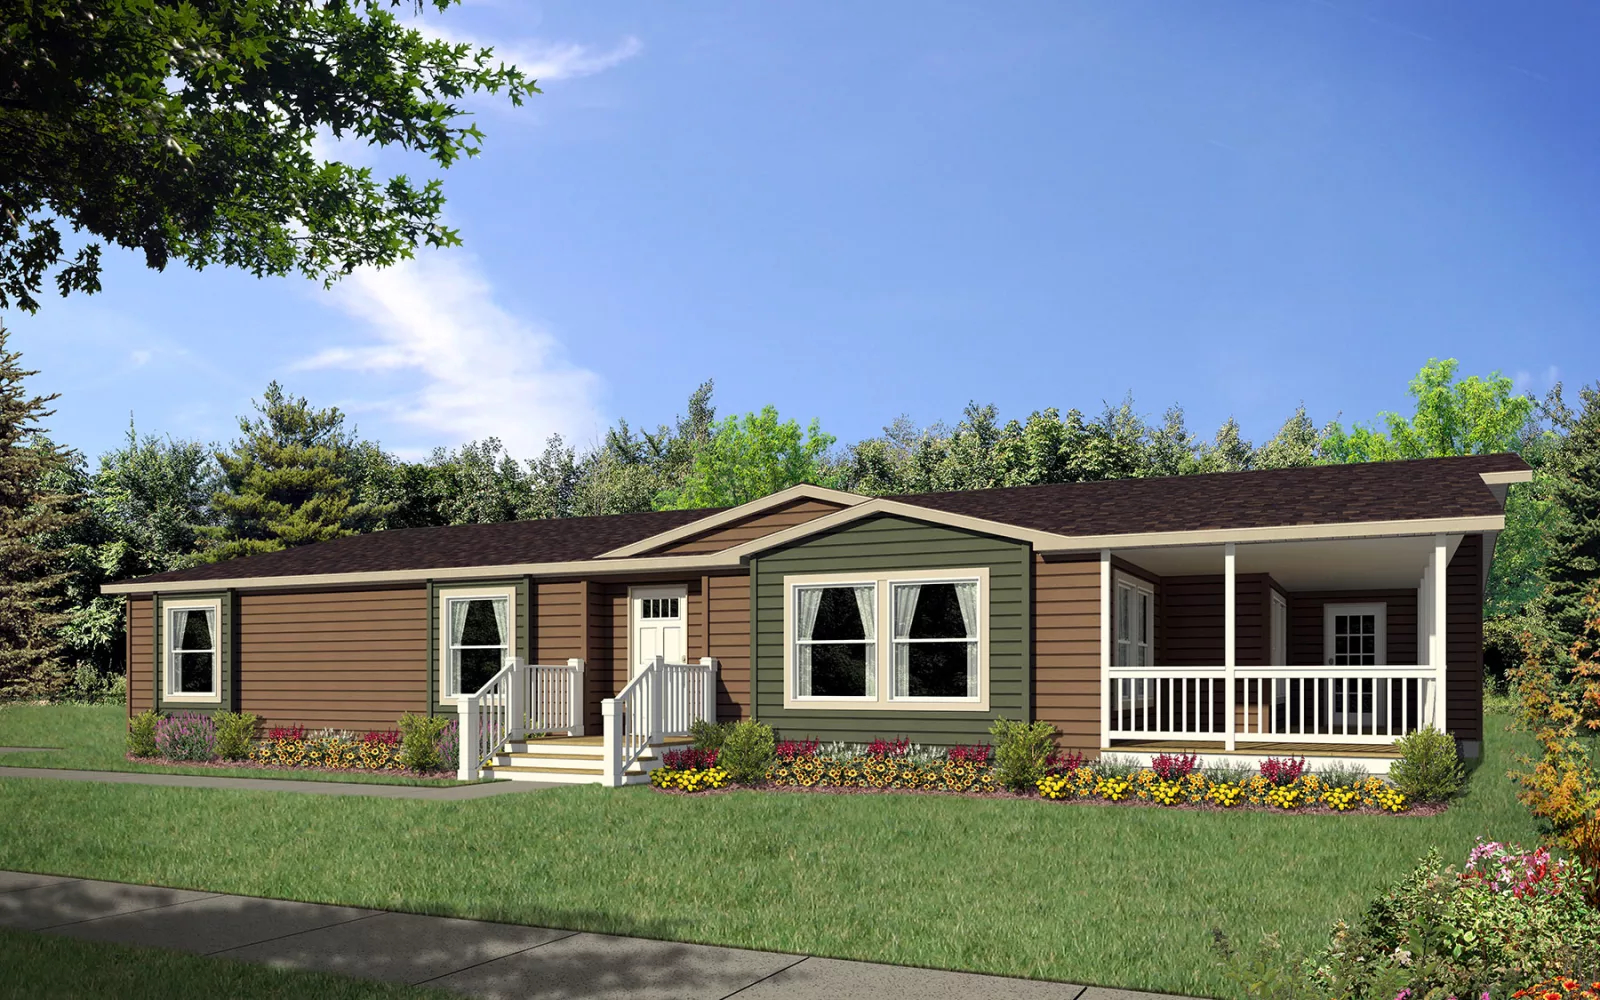 Image of the Champion Homes Avalanche 7684C exterior